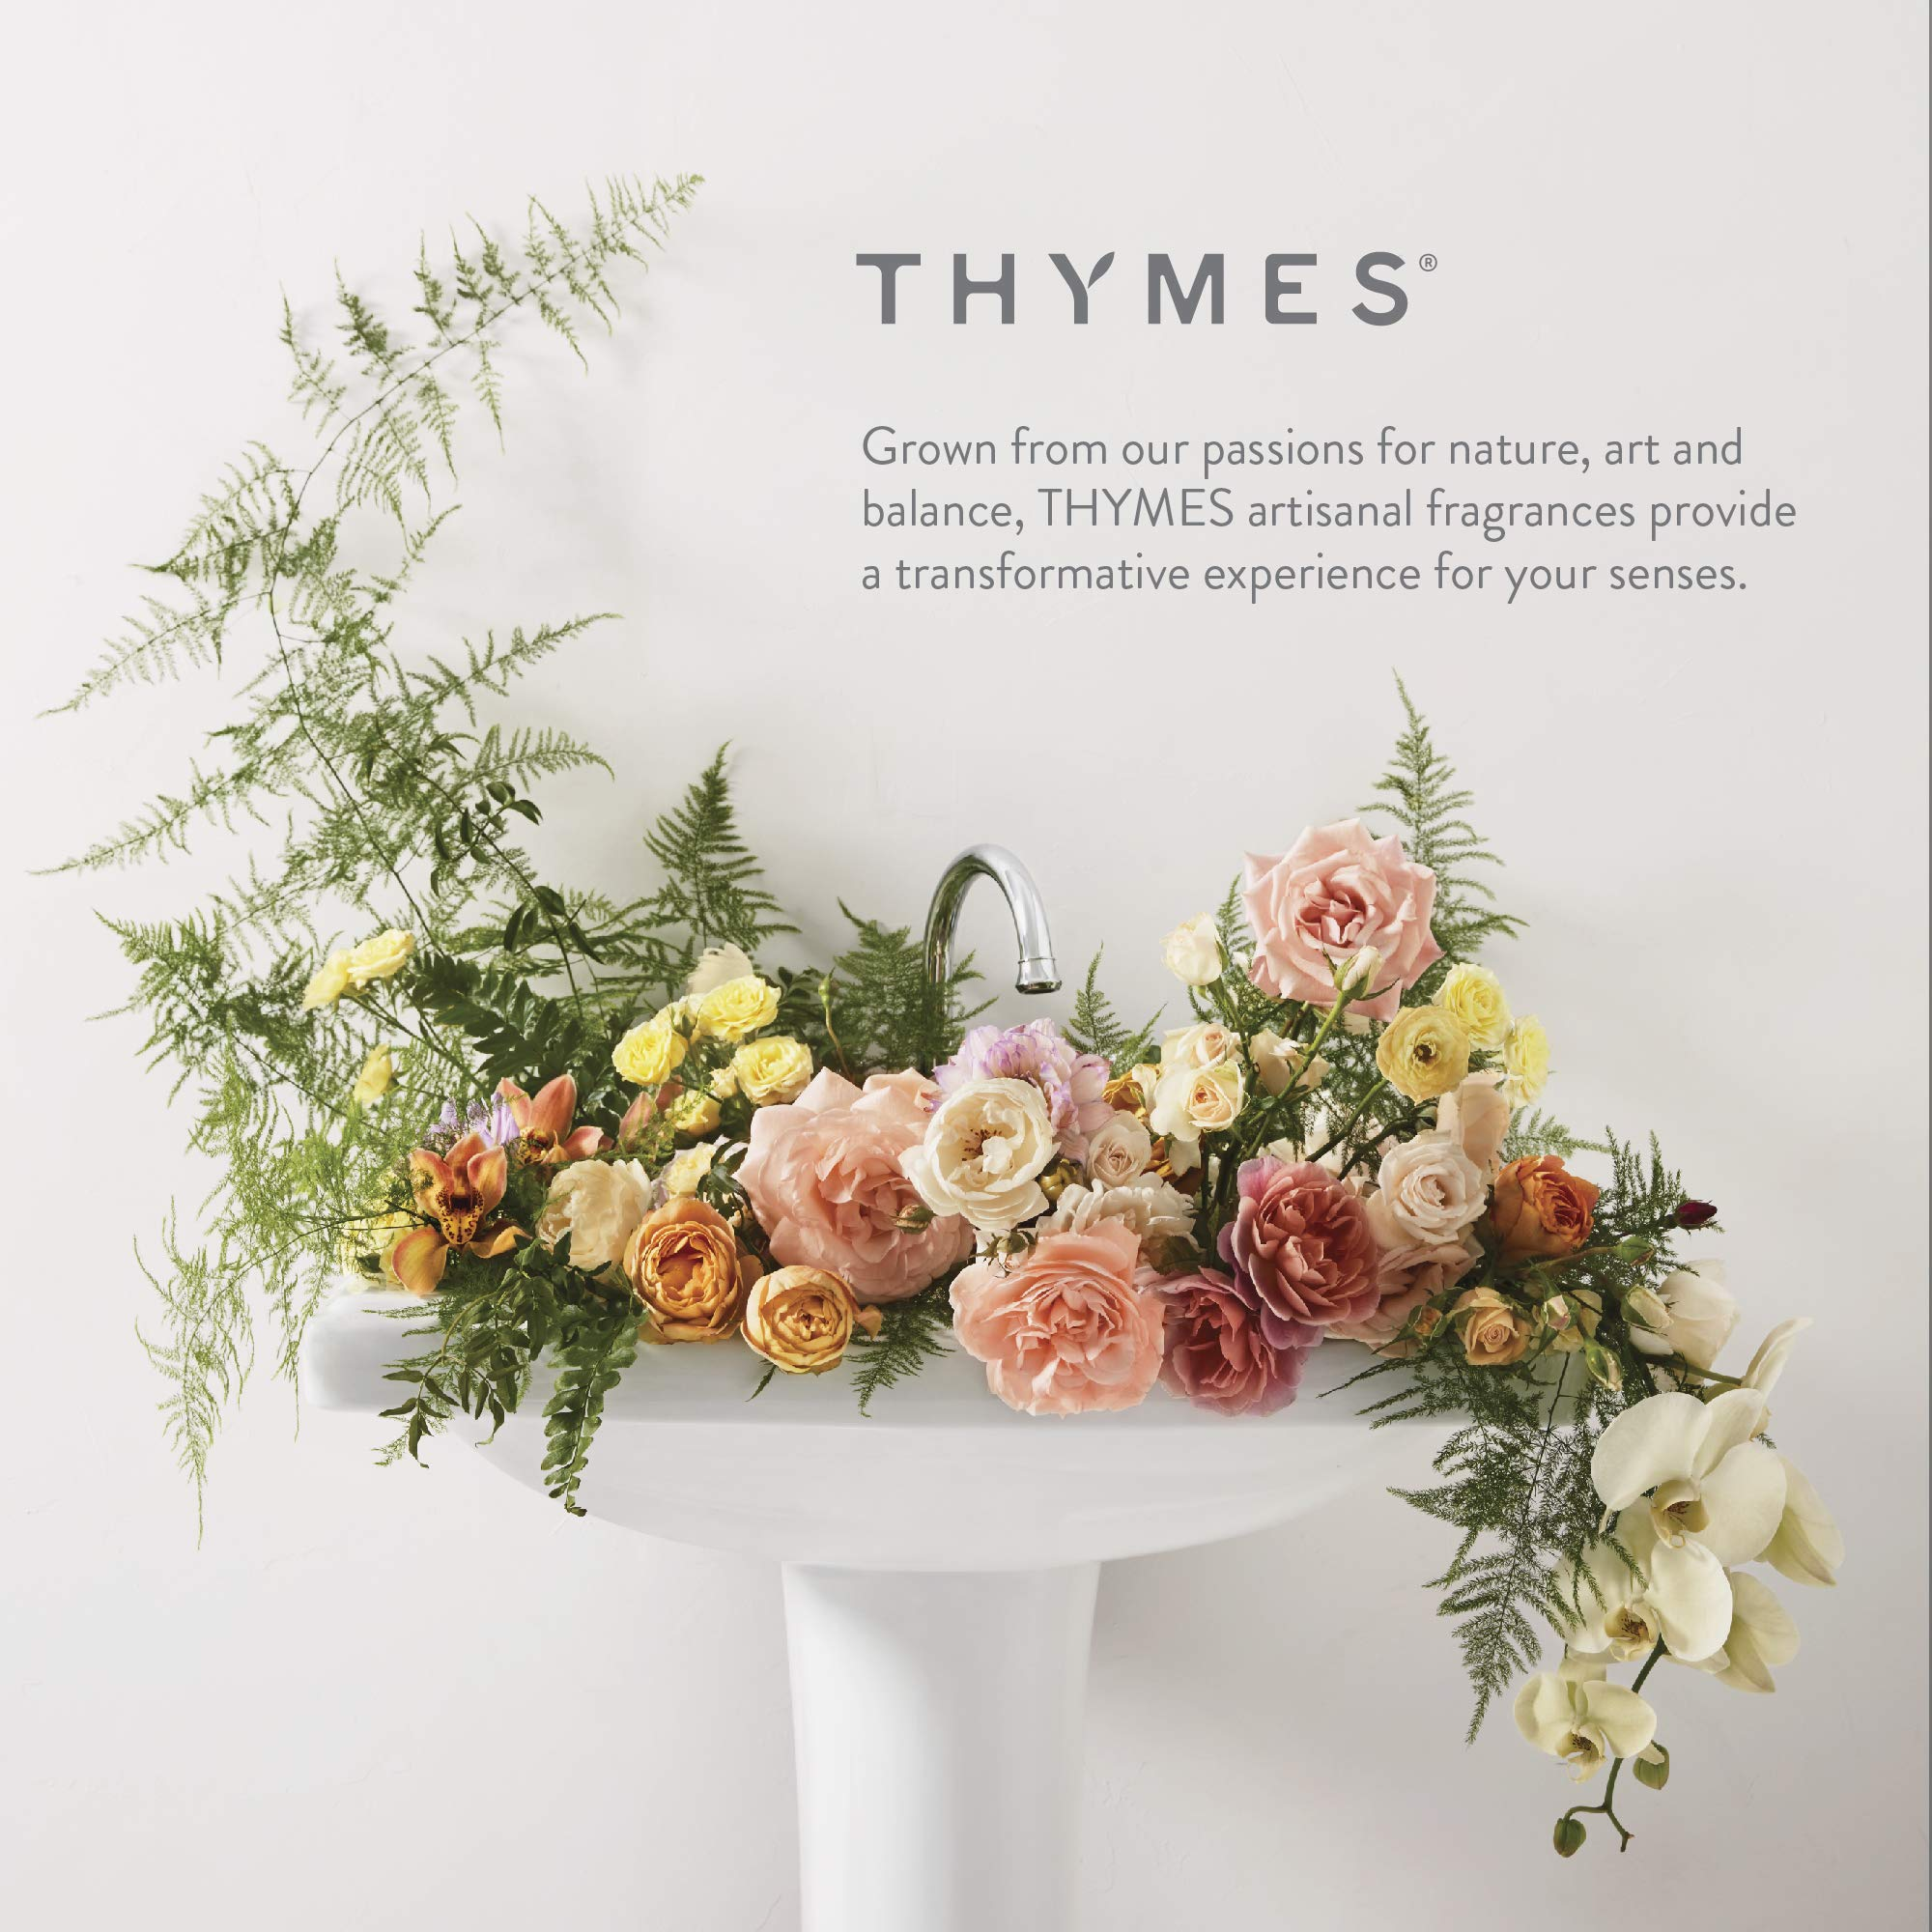 Thymes - Goldleaf Home Fragrance Mist (2-Pack) with Free Vetiver Rosewood Sample Pack- Elegant Floral Scented Room Spray - 3 oz by Thymes (Image #7)